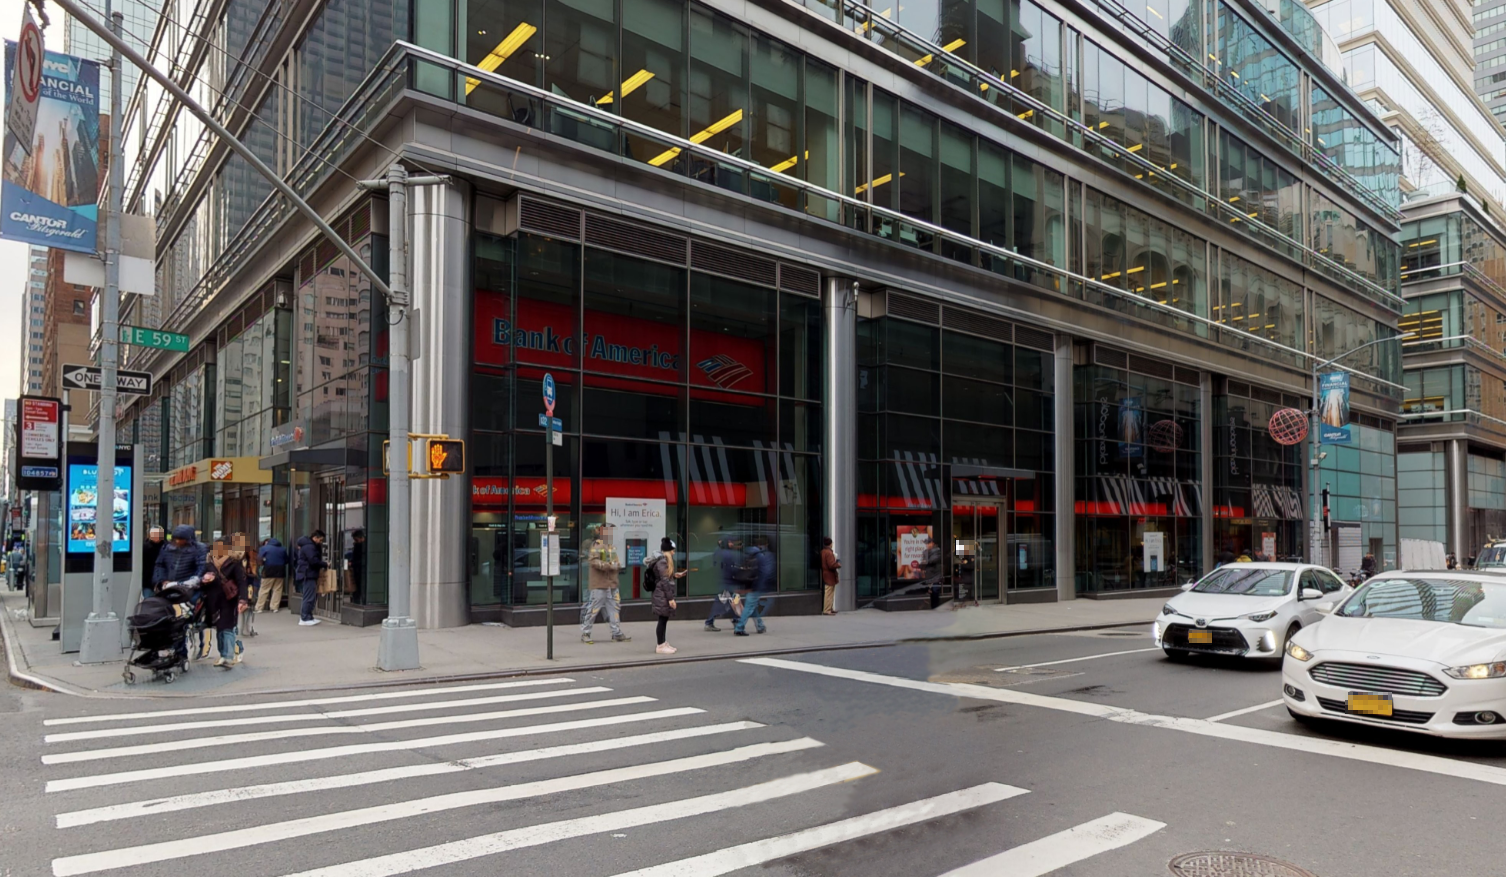 Bank of America financial center with walk-up ATM | 988 3rd Ave, New York, NY 10022